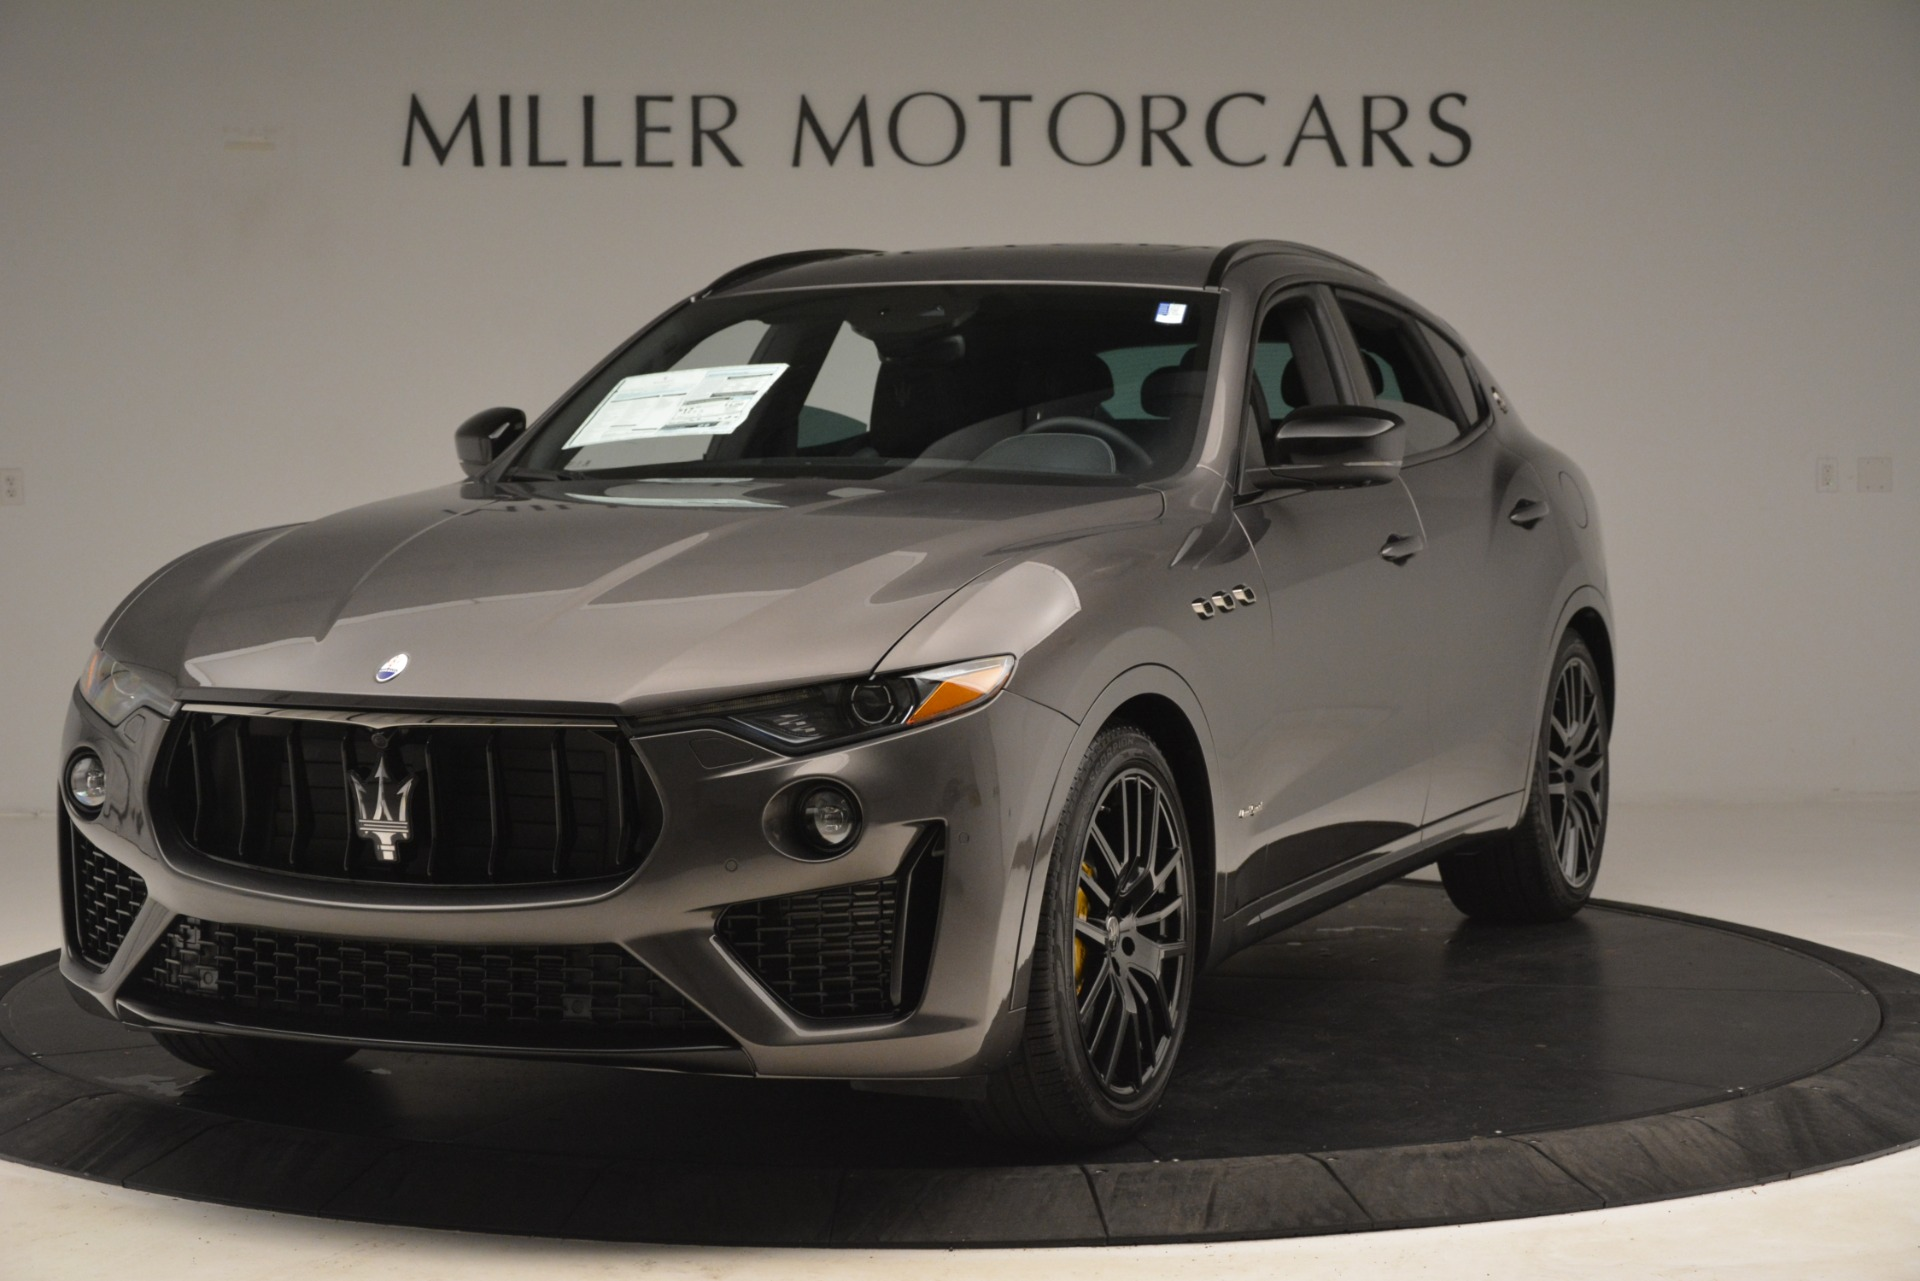 New 2019 Maserati Levante SQ4 GranSport Nerissimo for sale Sold at Rolls-Royce Motor Cars Greenwich in Greenwich CT 06830 1